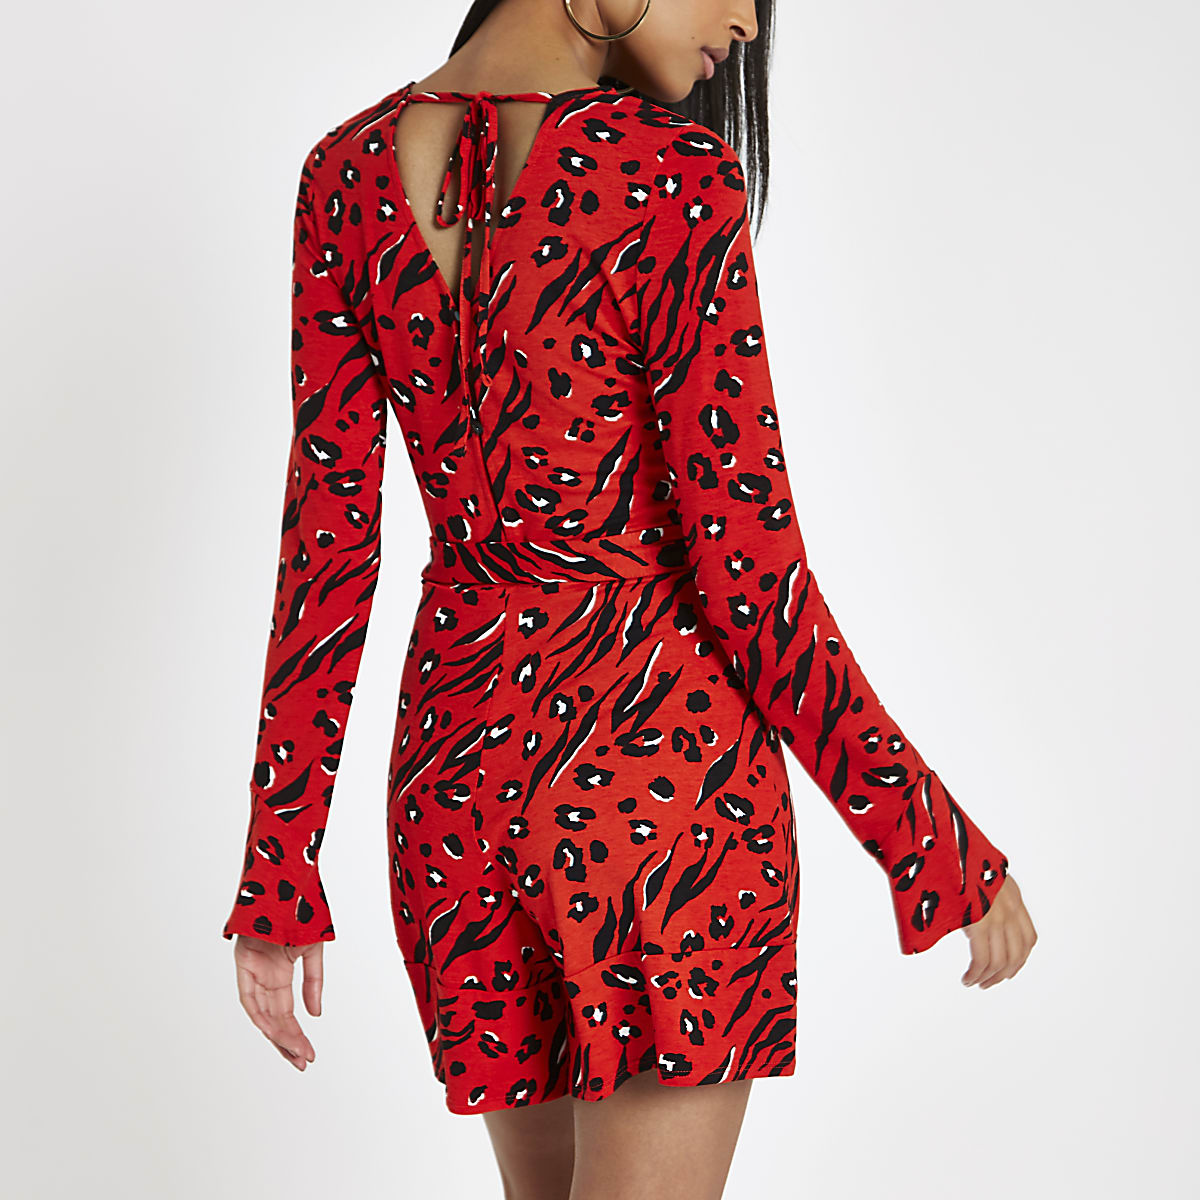 7b83134635dc Red animal print long sleeve playsuit - Playsuits - Playsuits ...